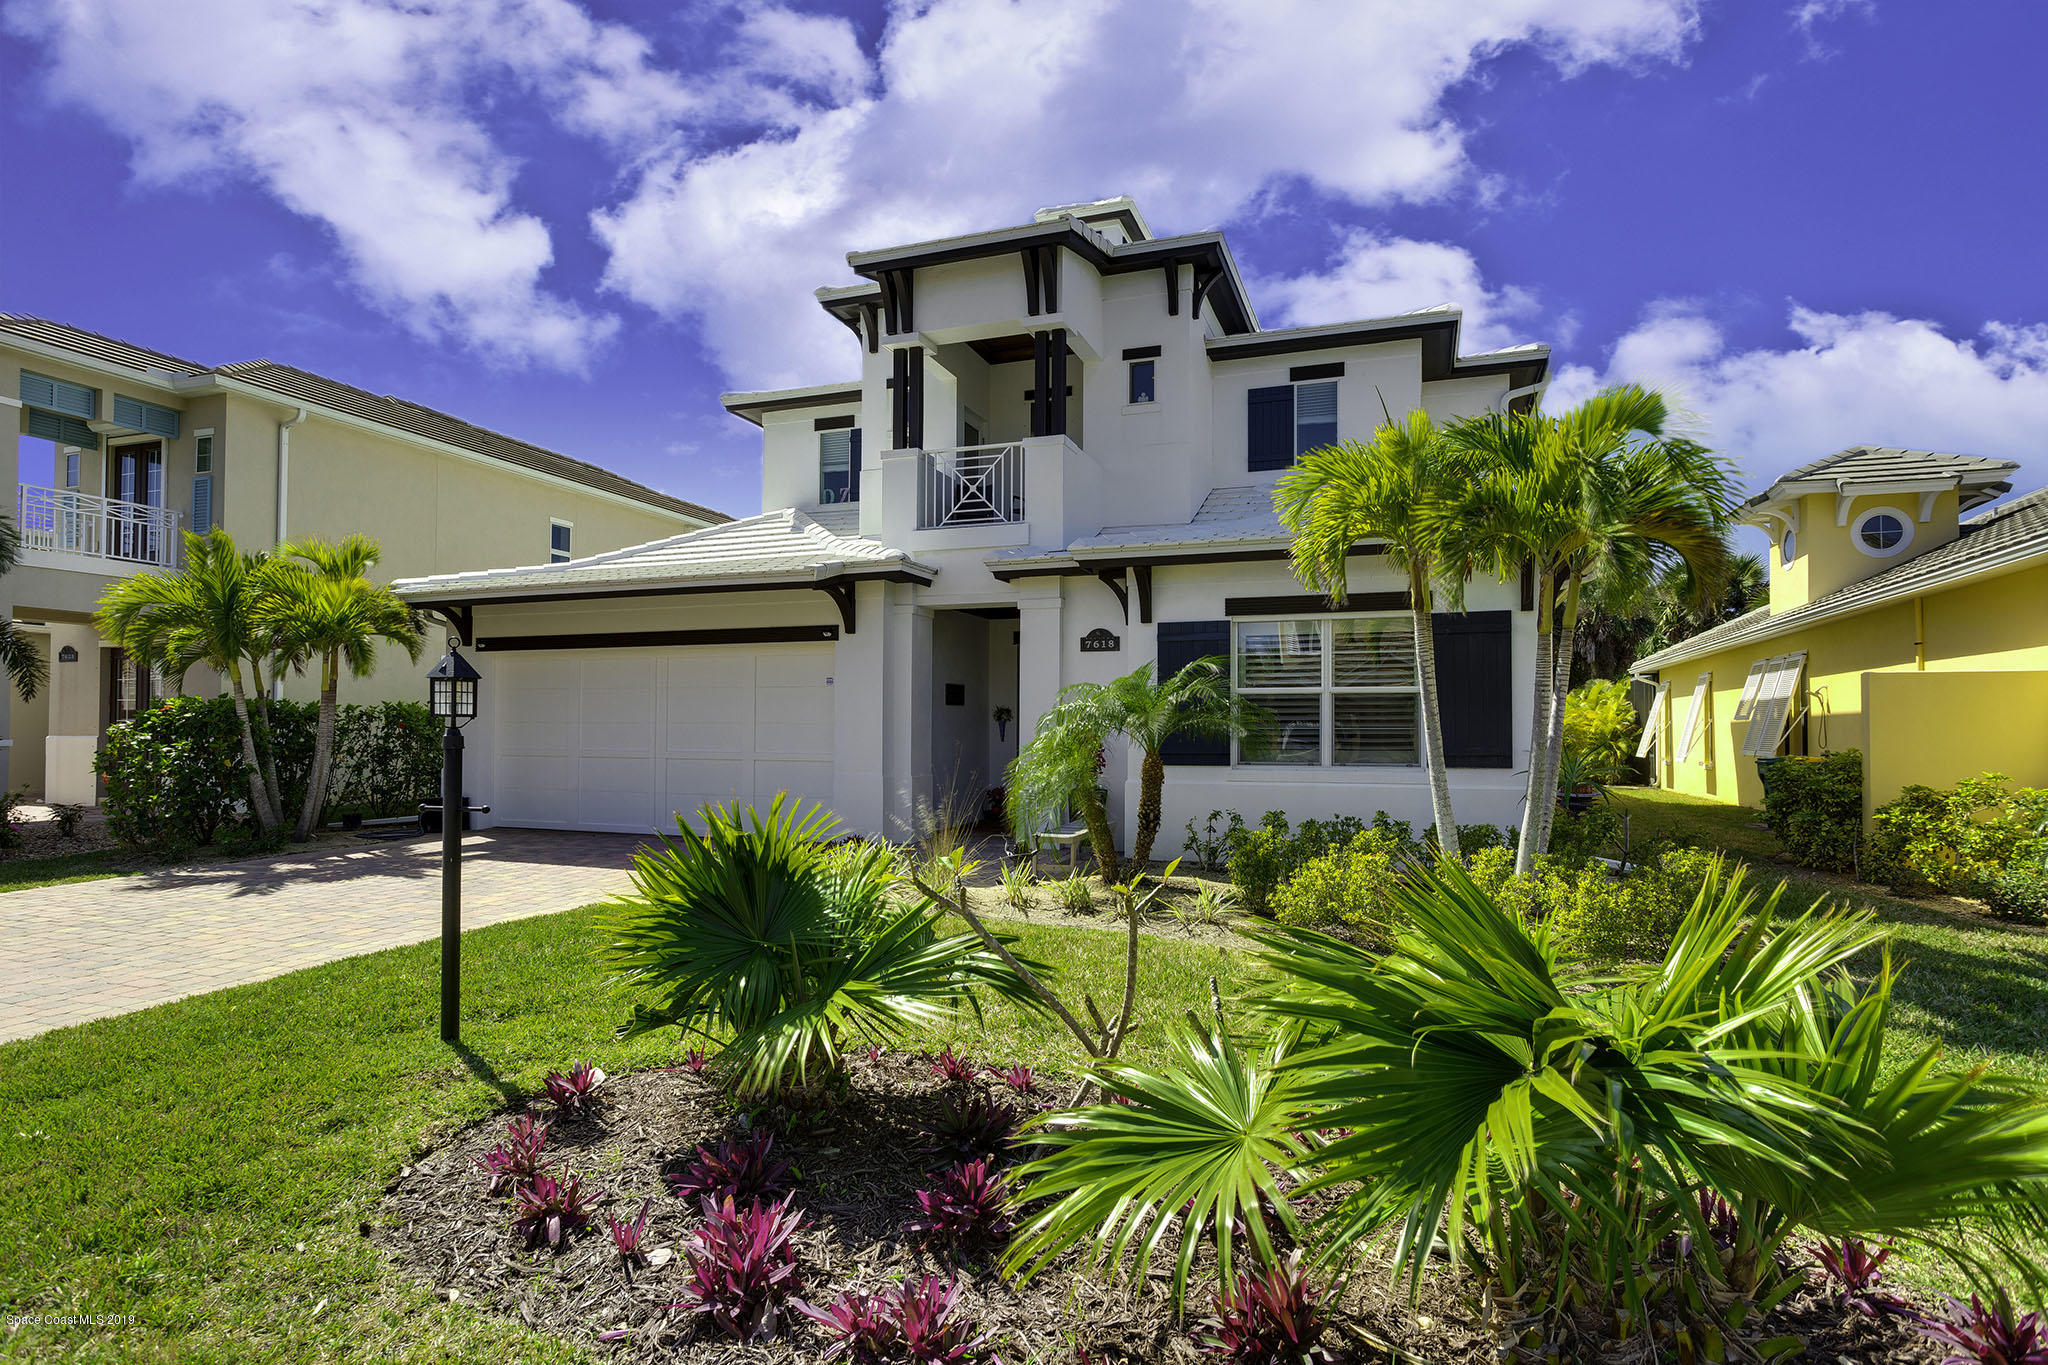 Single Family Homes for Sale at 7618 Kiawah Melbourne Beach, Florida 32951 United States